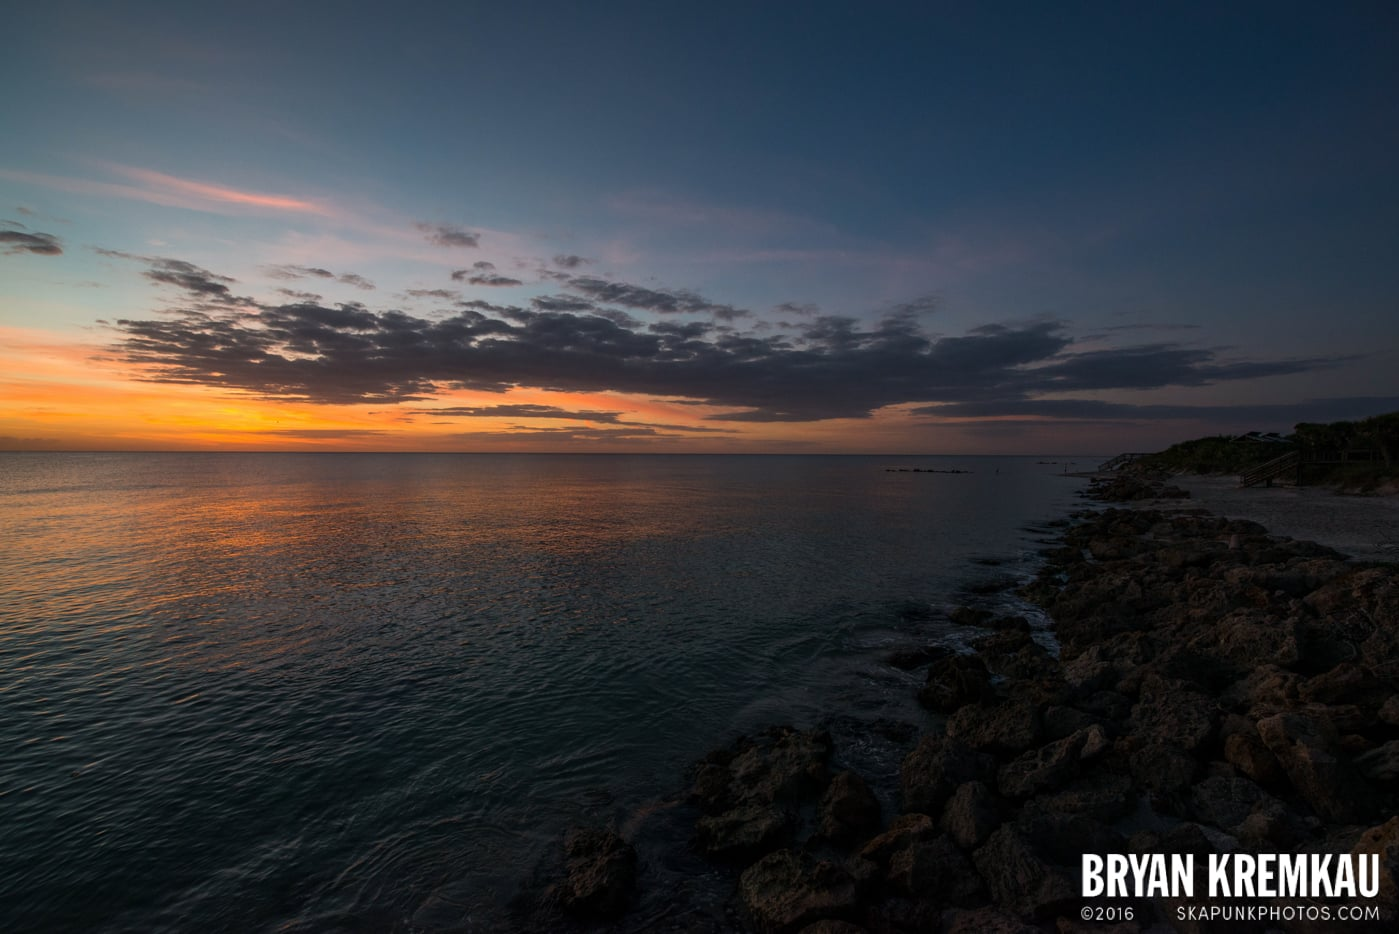 Sunsets, Astrophotography & Birds @ Venice, Florida - 10.25.14 - 11.5.14 (61)